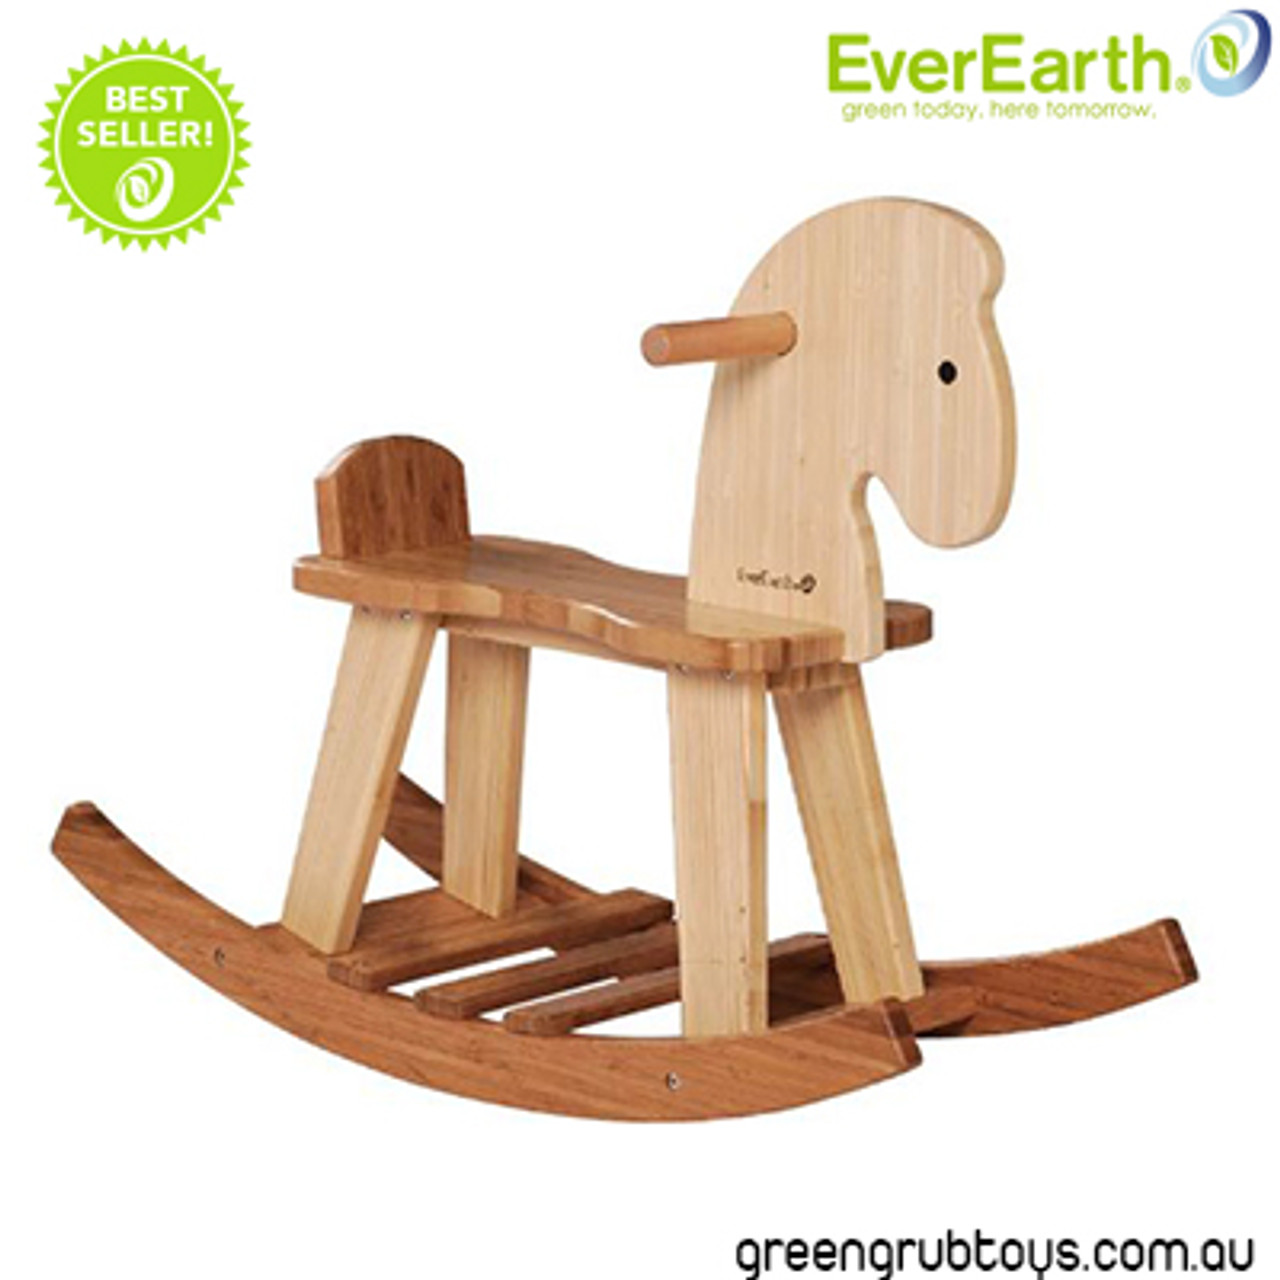 Everearth Bamboo Wooden Rocking Horse Riding Toy For Kids